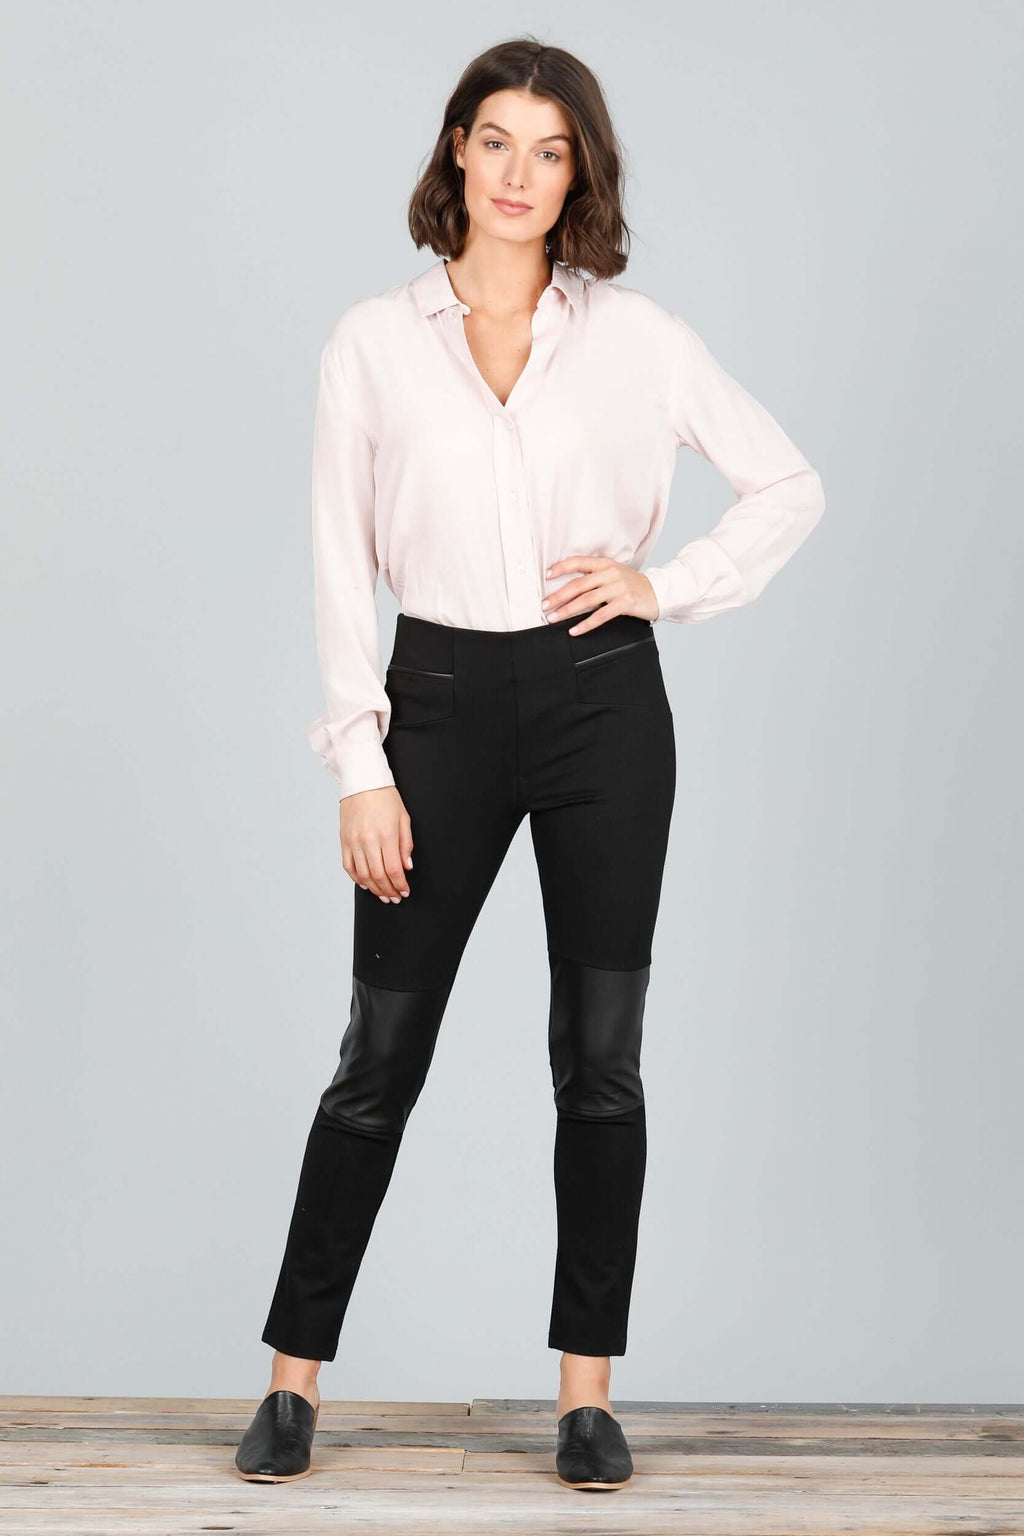 Brave + True Cleo Black Faux Leather Pant BT4615 (4545326973013)